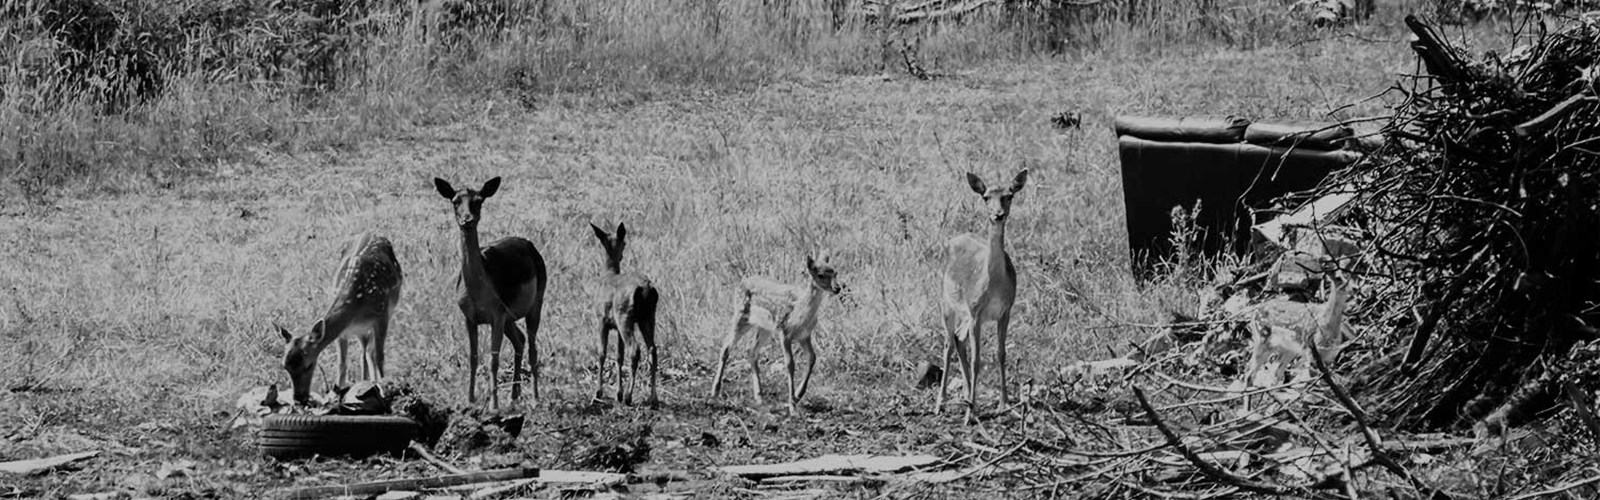 A herd of fawn deer